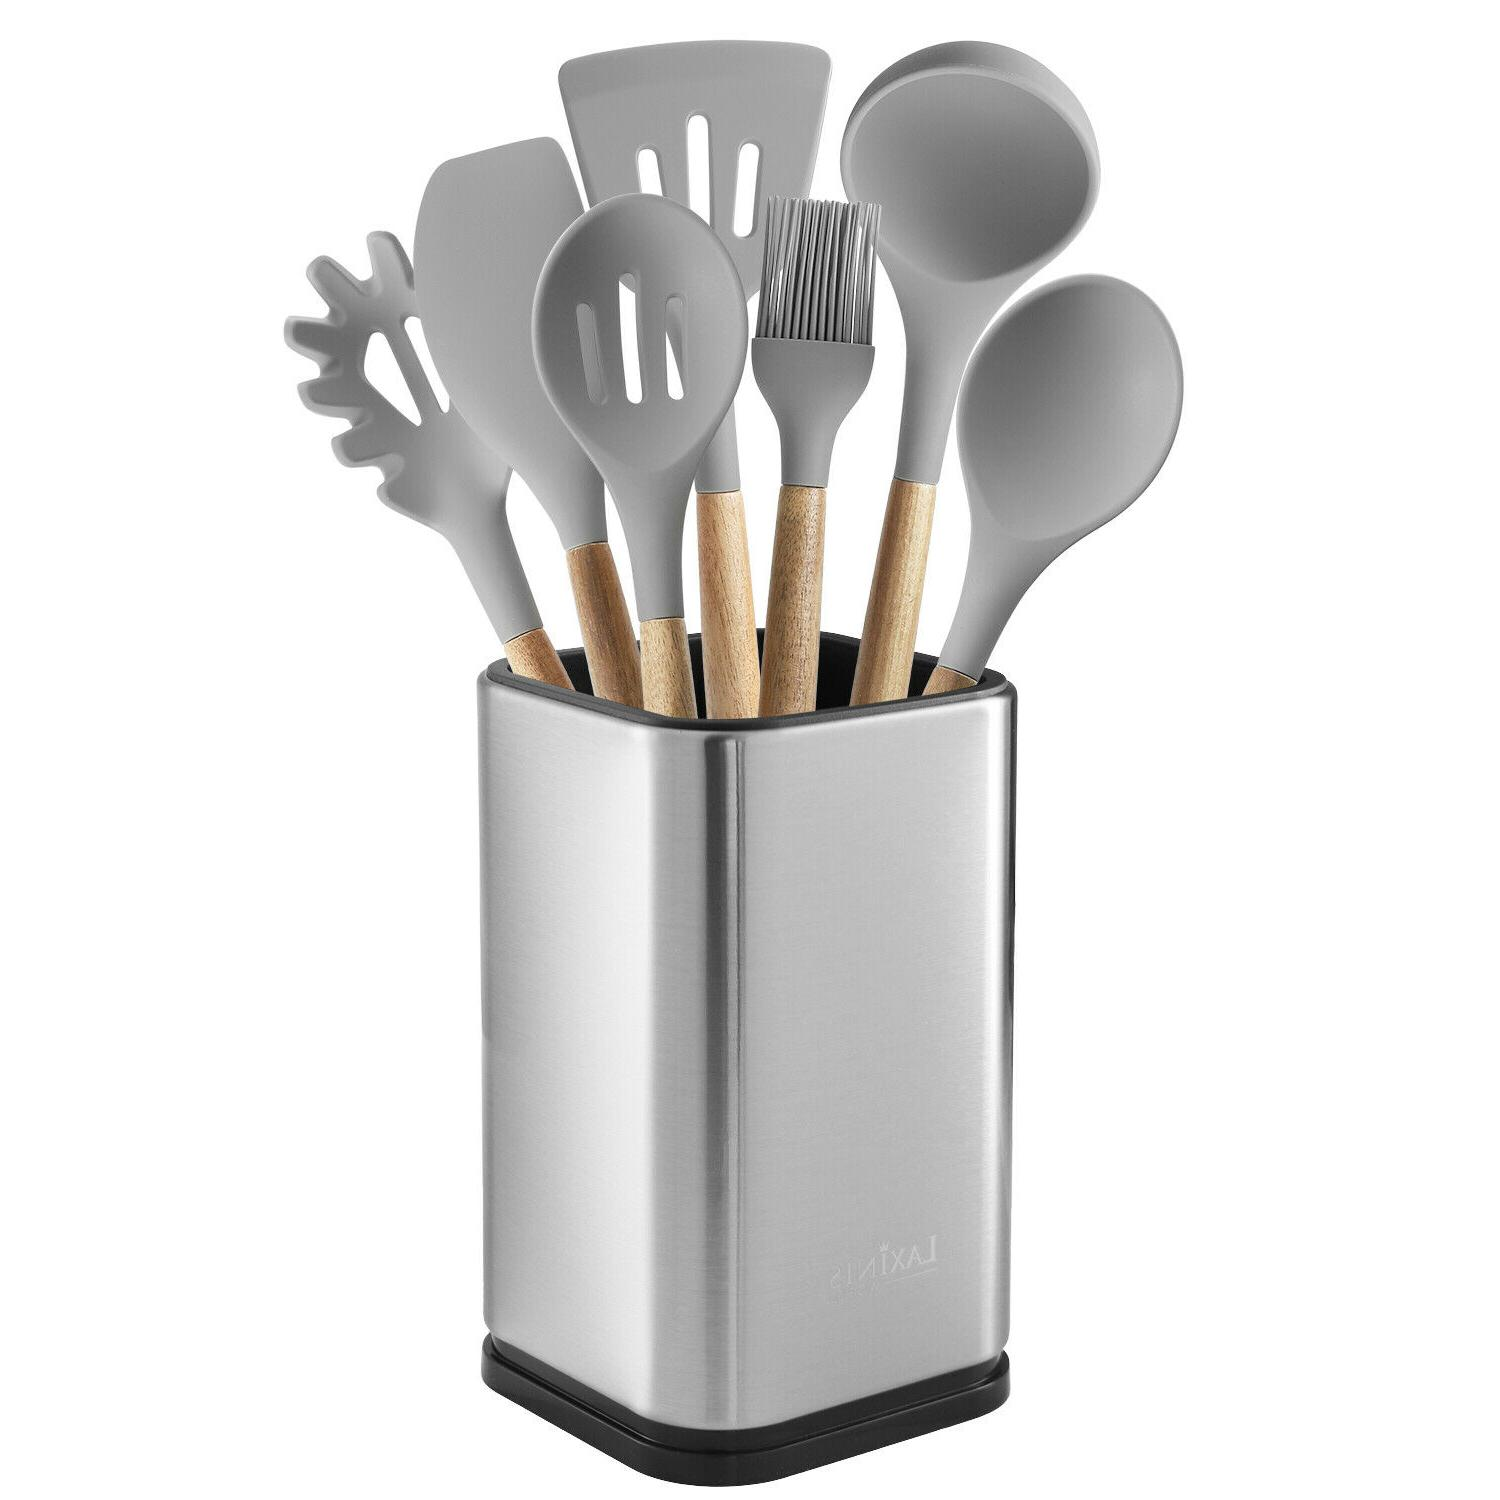 stainless steel kitchen utensil holder, kitchen caddy, utensil